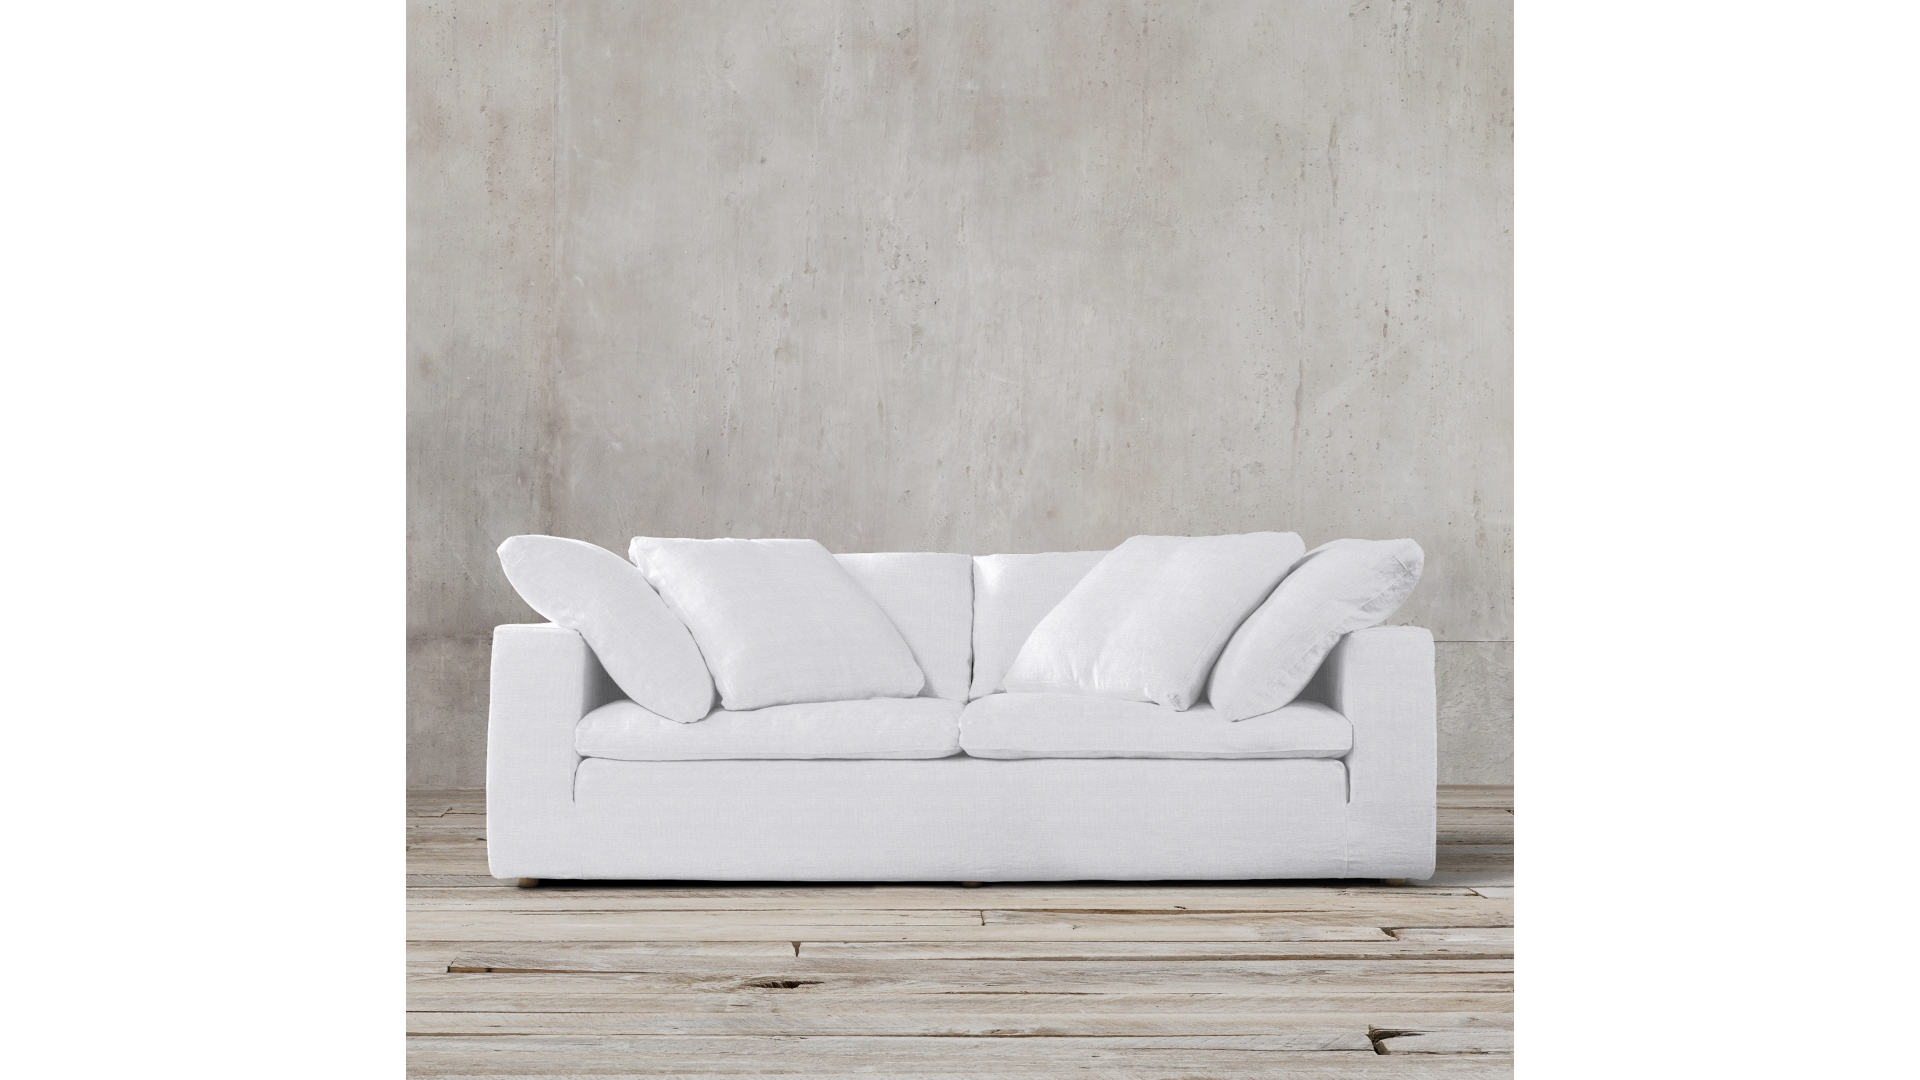 Cloud Couch